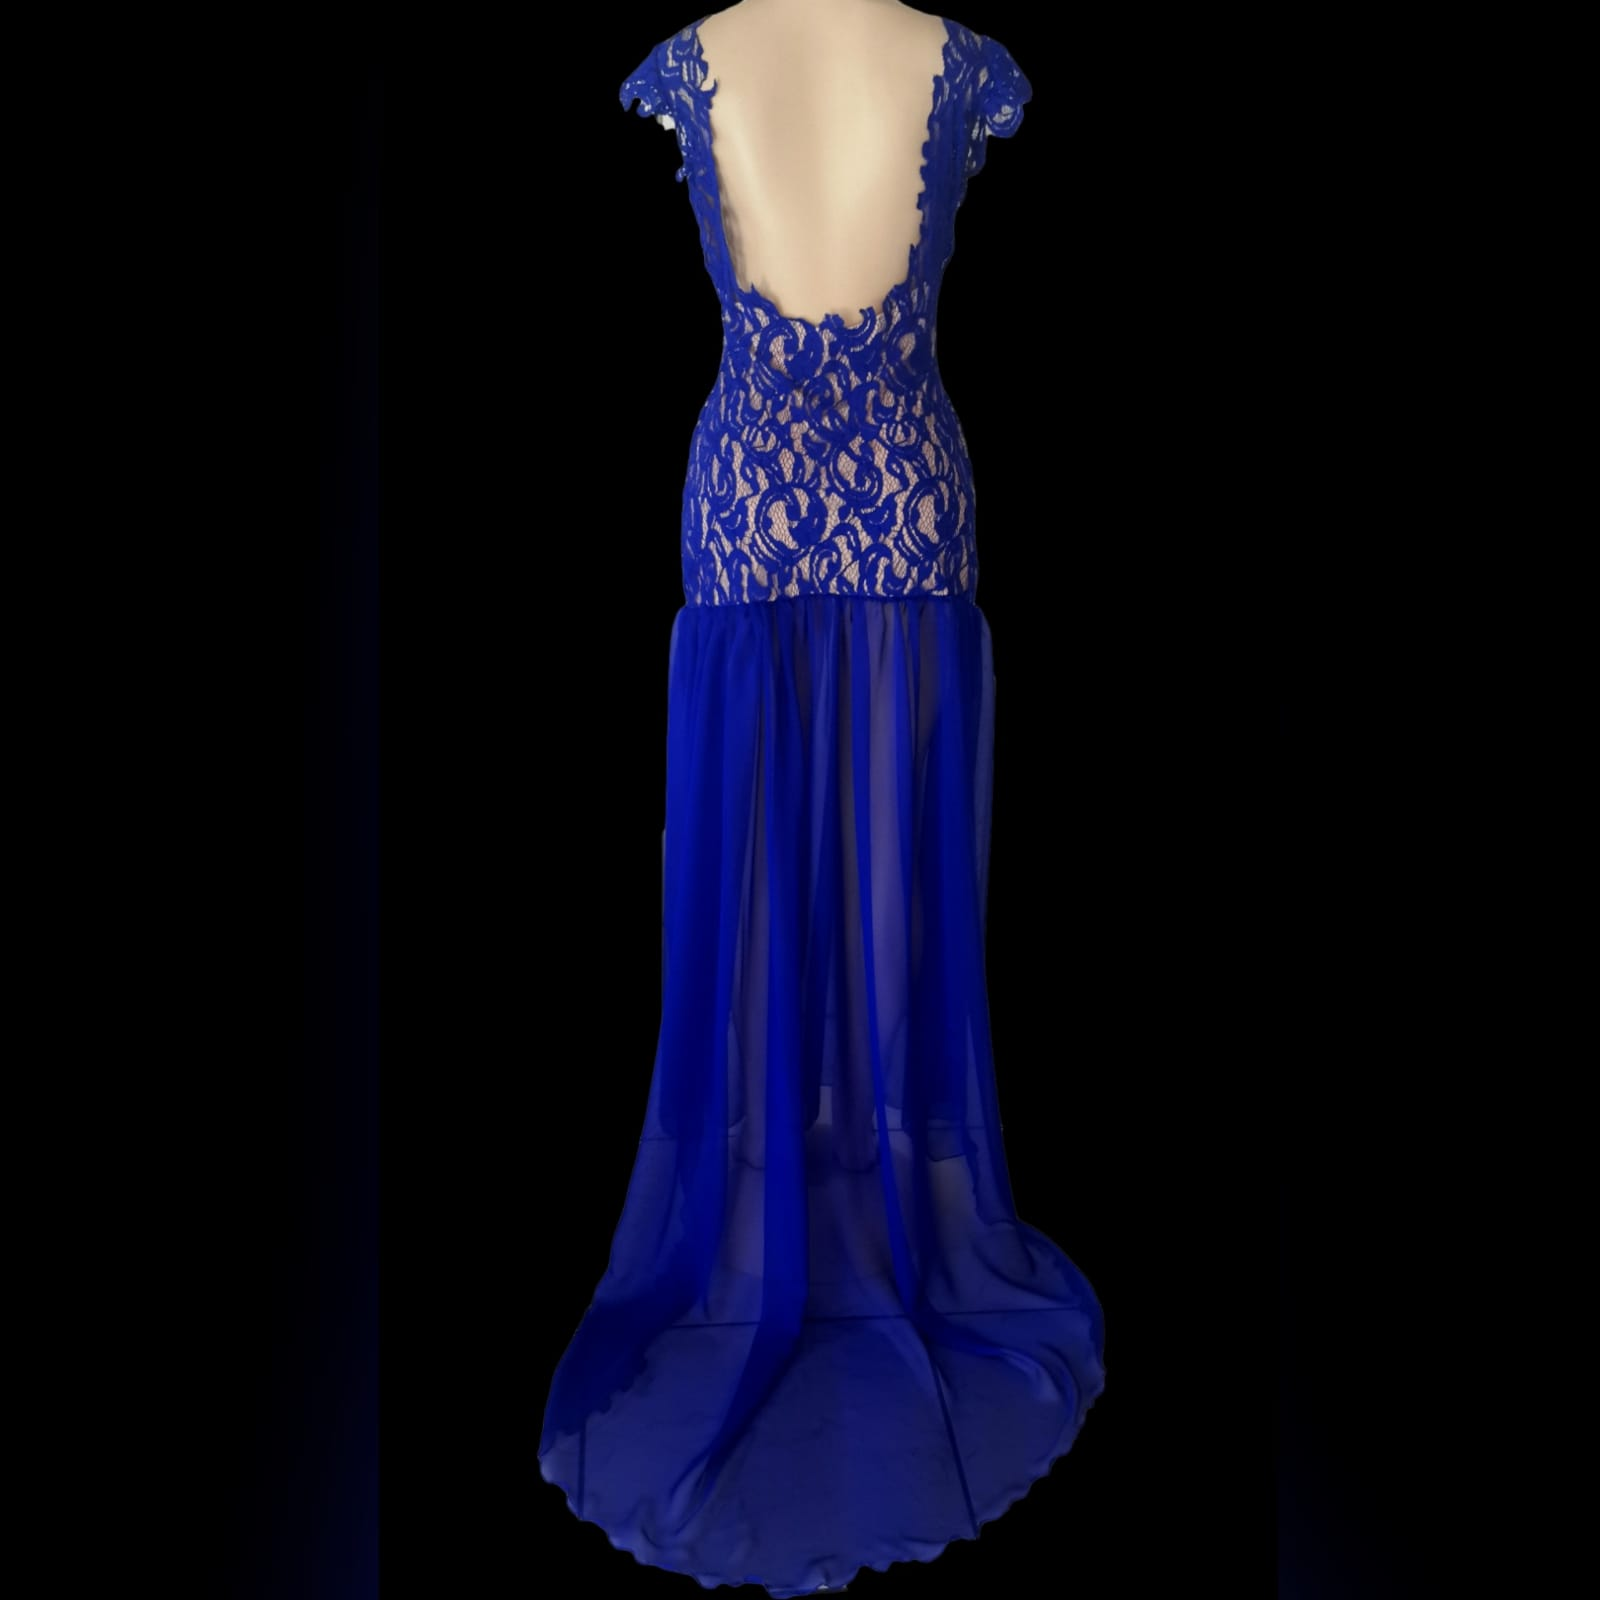 Royal blue pageant evening dress 2 royal blue pageant evening dress, with a lace bodice lined in nude, with a sheer gathered chiffon bottom with high slit, and a rounded open back.